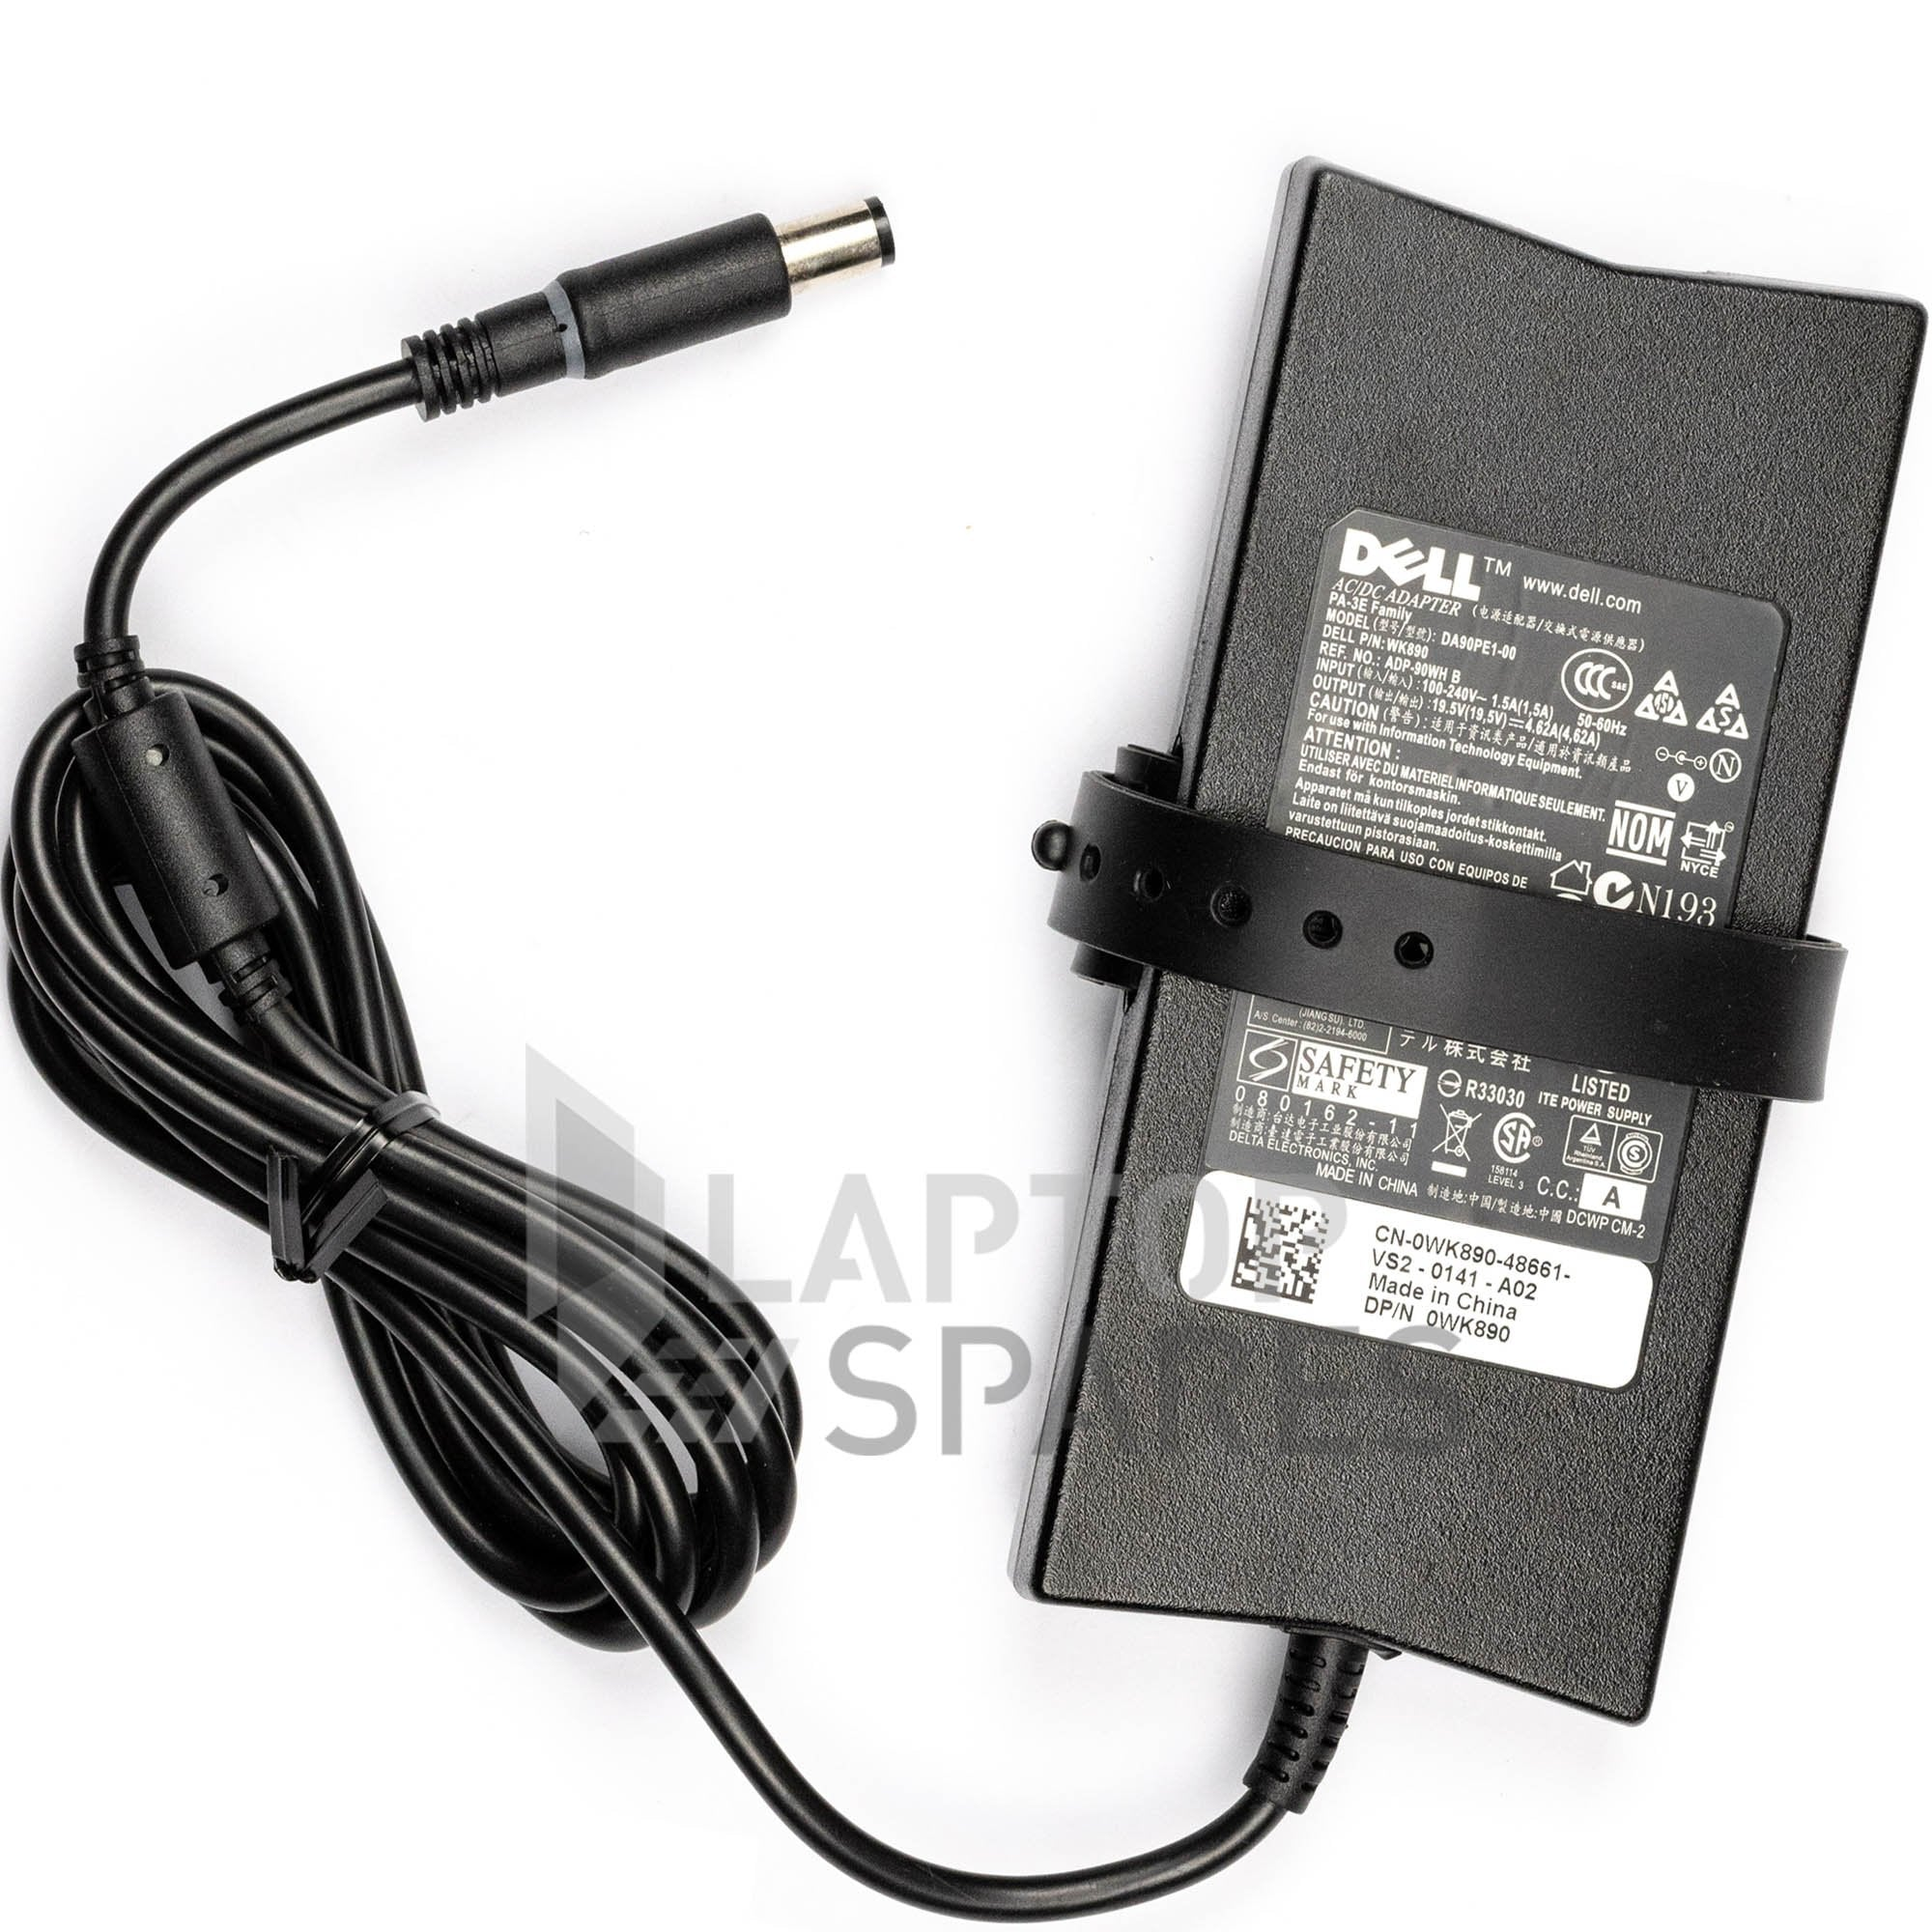 Dell Precision Workstations T3600 T5600 T7600 Laptop Slim AC Adapter Charger